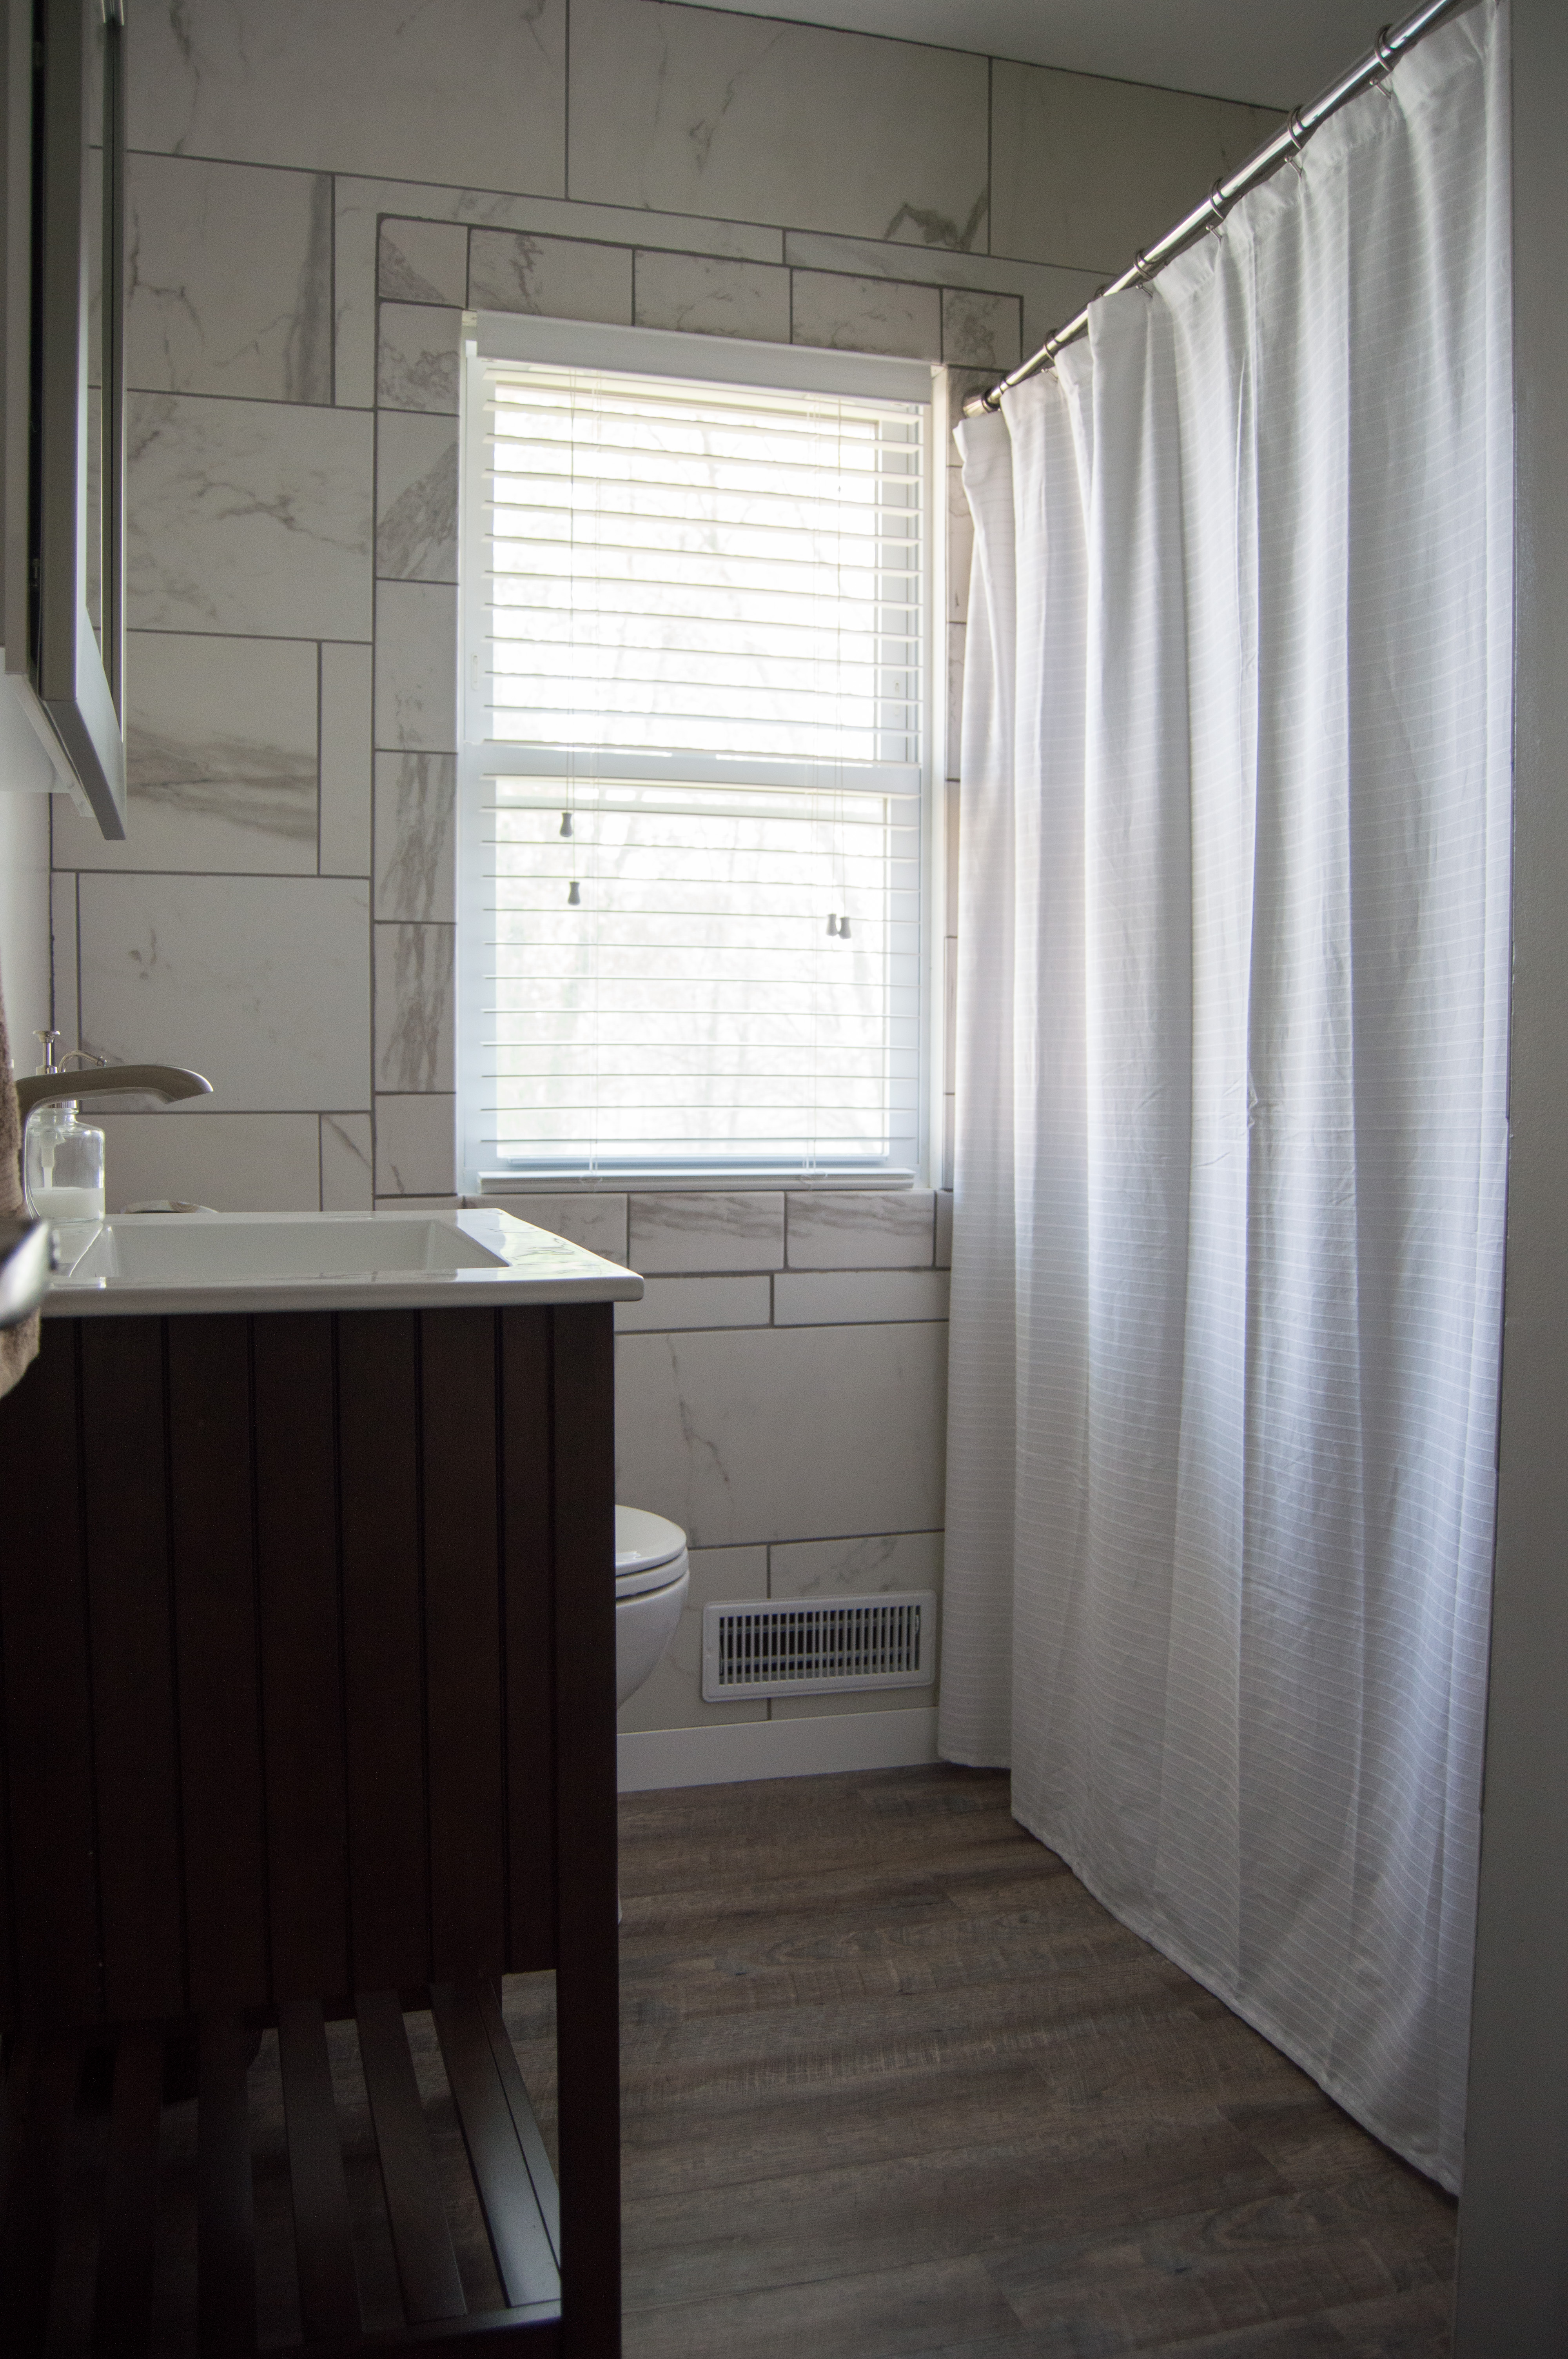 Small Bathroom Remodel - Old Home